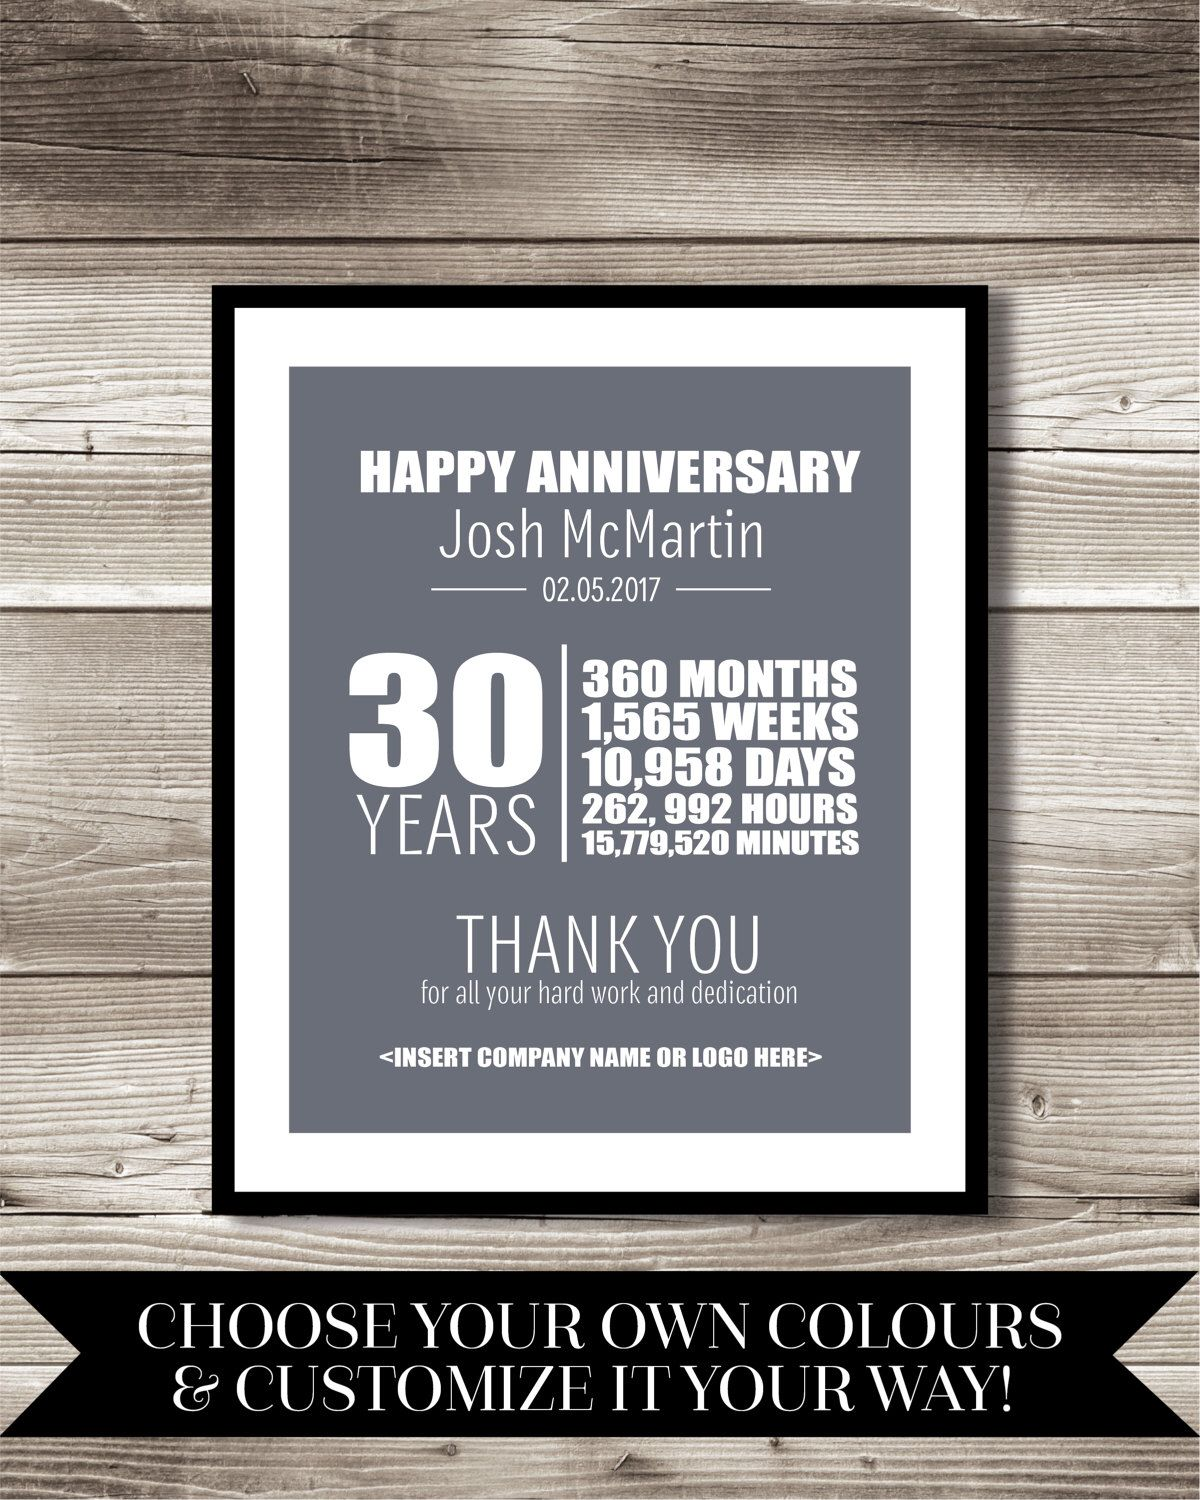 30 Year Work Anniversary Print Gift Digital Print Customizable Thank You Gift Years Of Service Employee Recognition Work Anniversary Work Anniversary Cards Work Anniversary Gifts